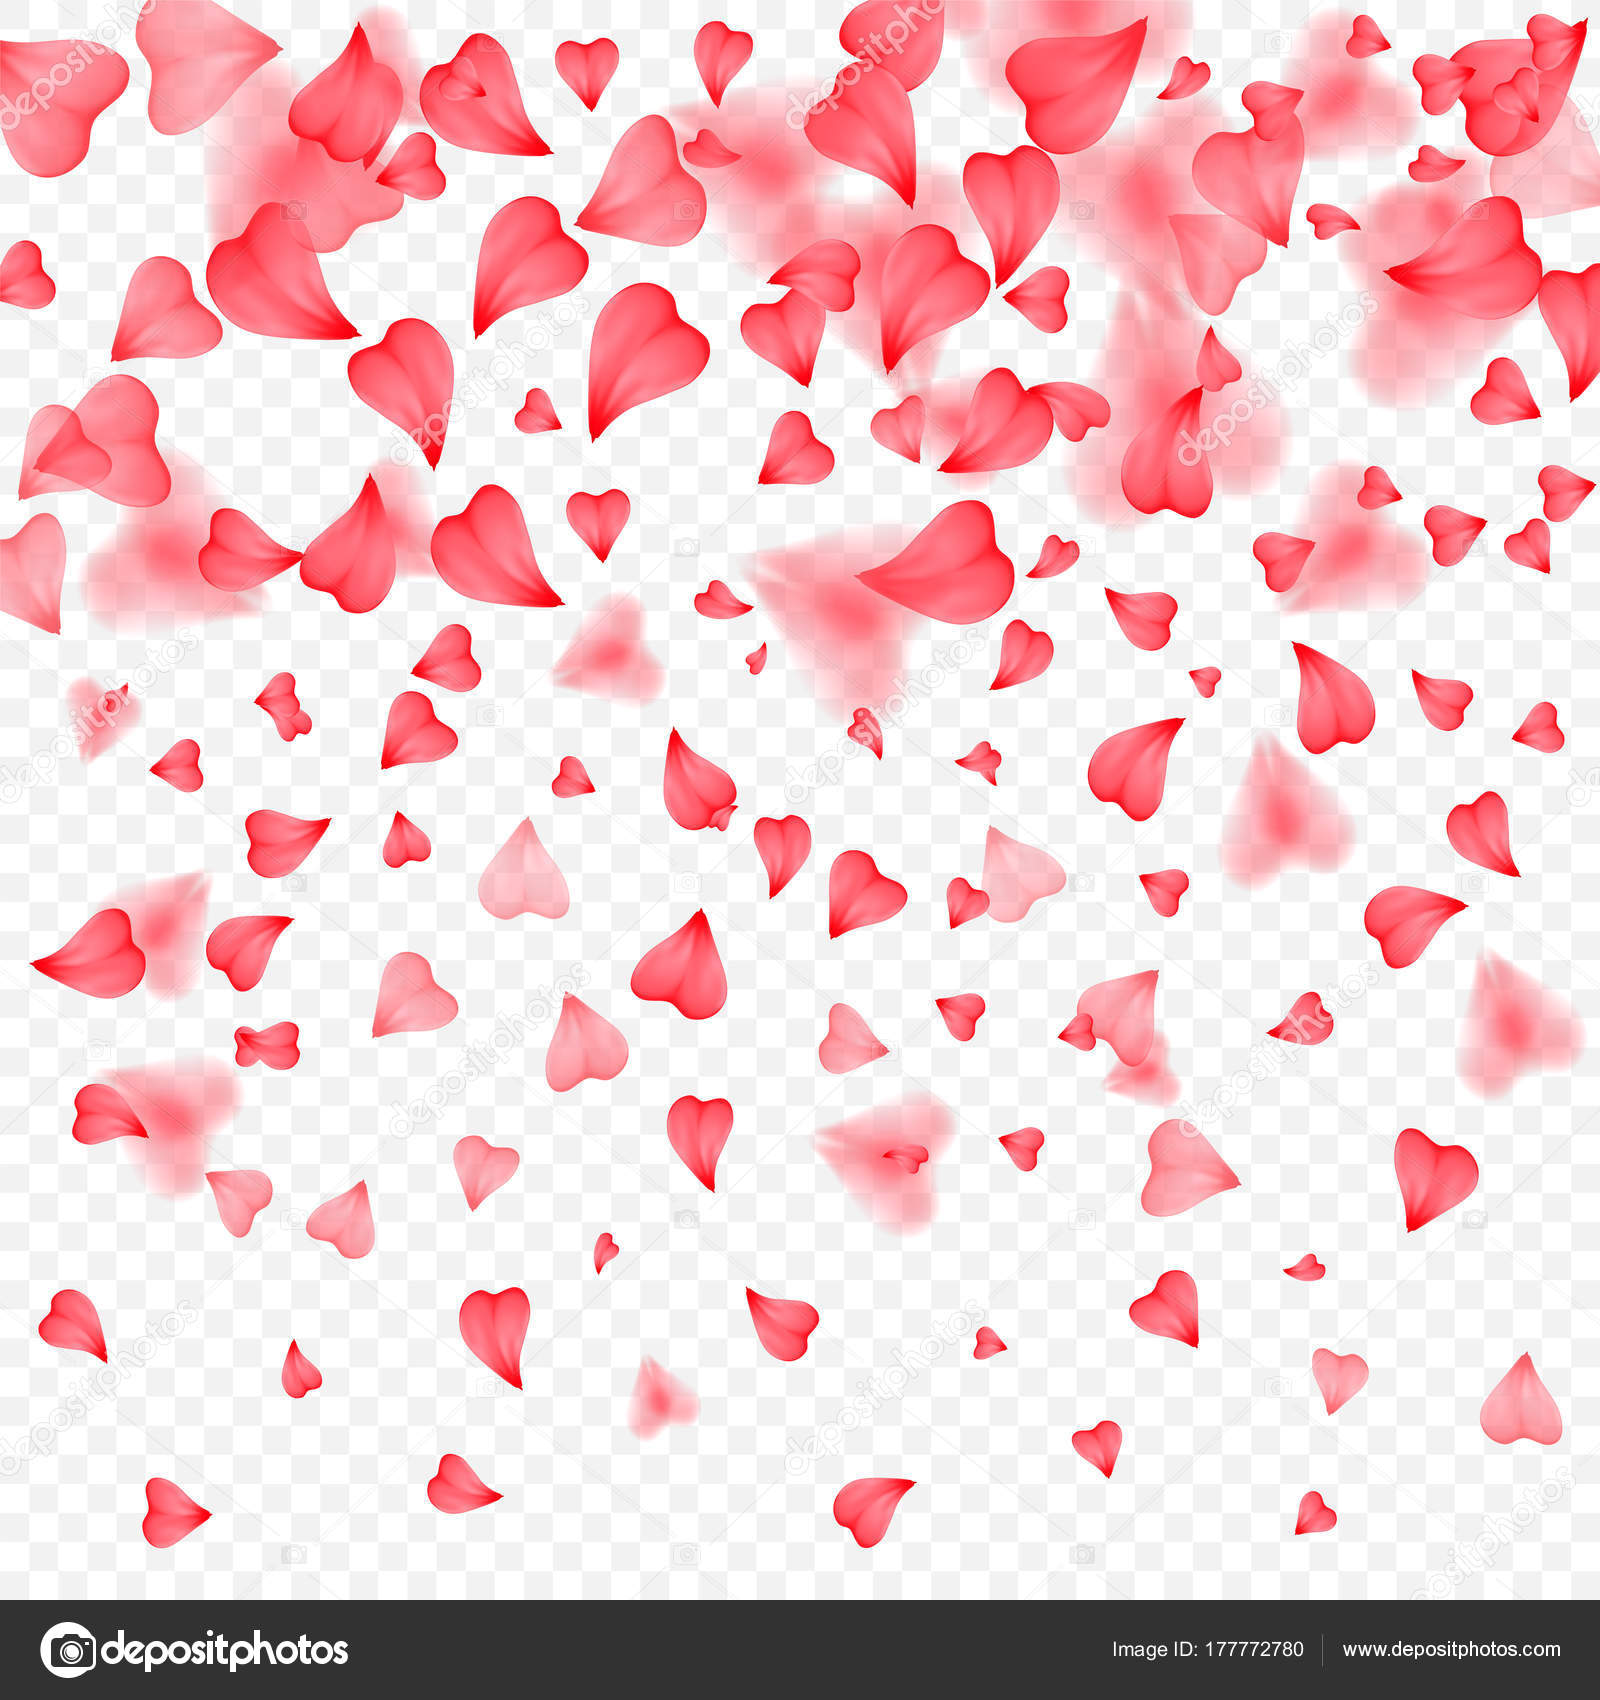 Valentines Day romantic background of red hearts petals falling ...